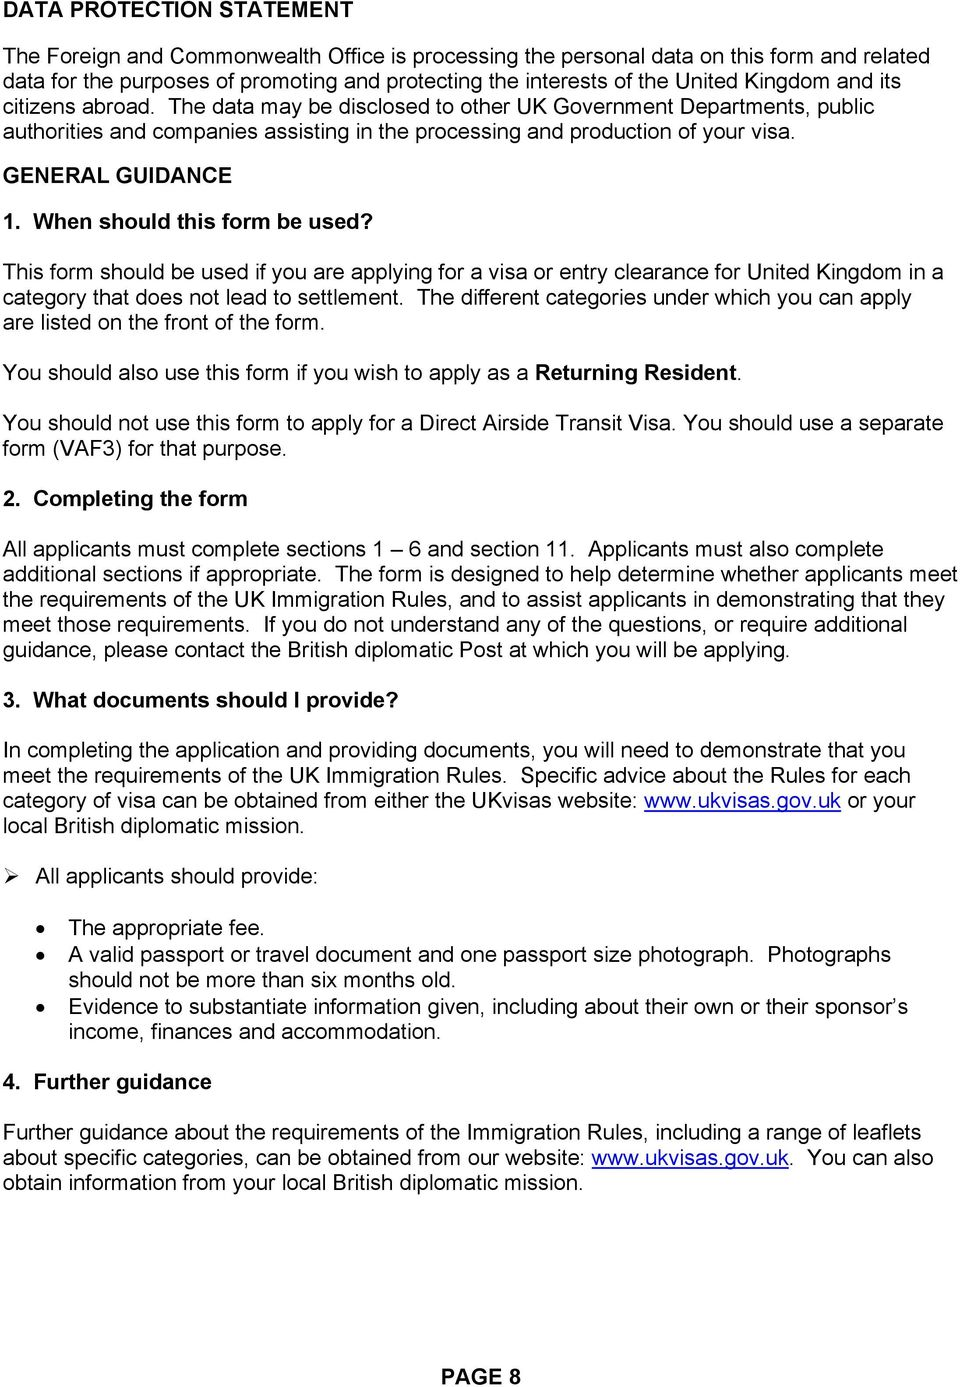 GENERAL GUIDANCE 1. When should this form be used? This form should be used if you are applying for a visa or entry clearance for United Kingdom in a category that does not lead to settlement.